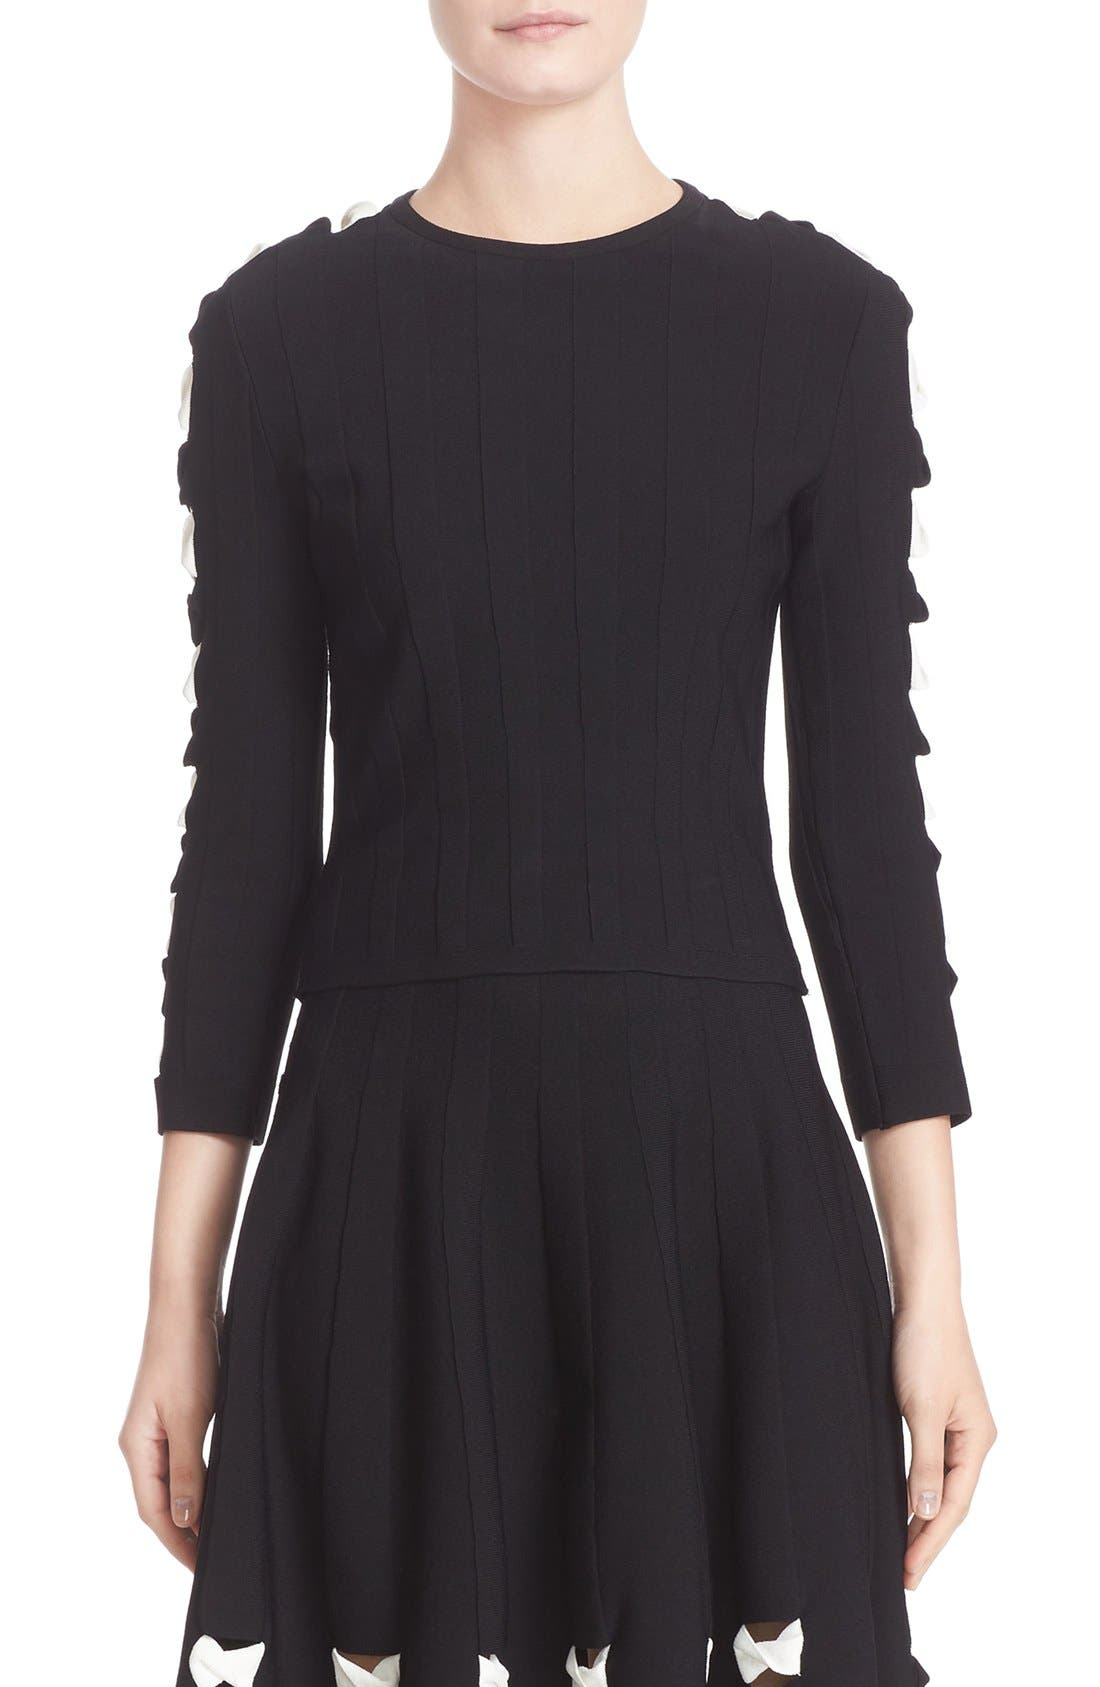 Alexander McQueen Twisted Cutout Knit Top